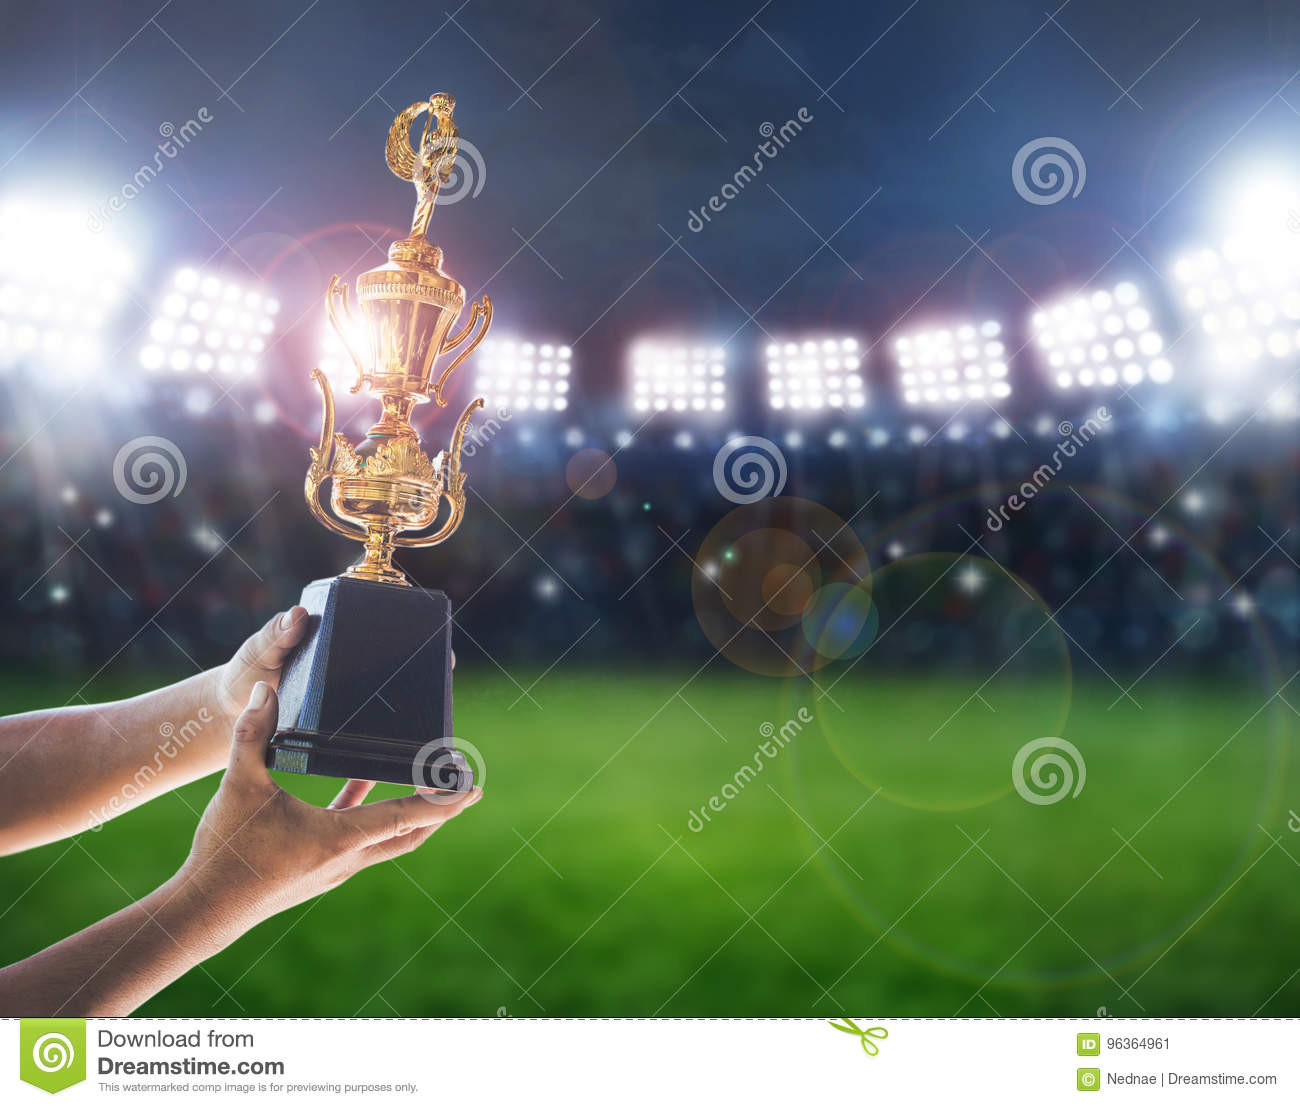 Man holding up a a gold trophy cup,win concept.